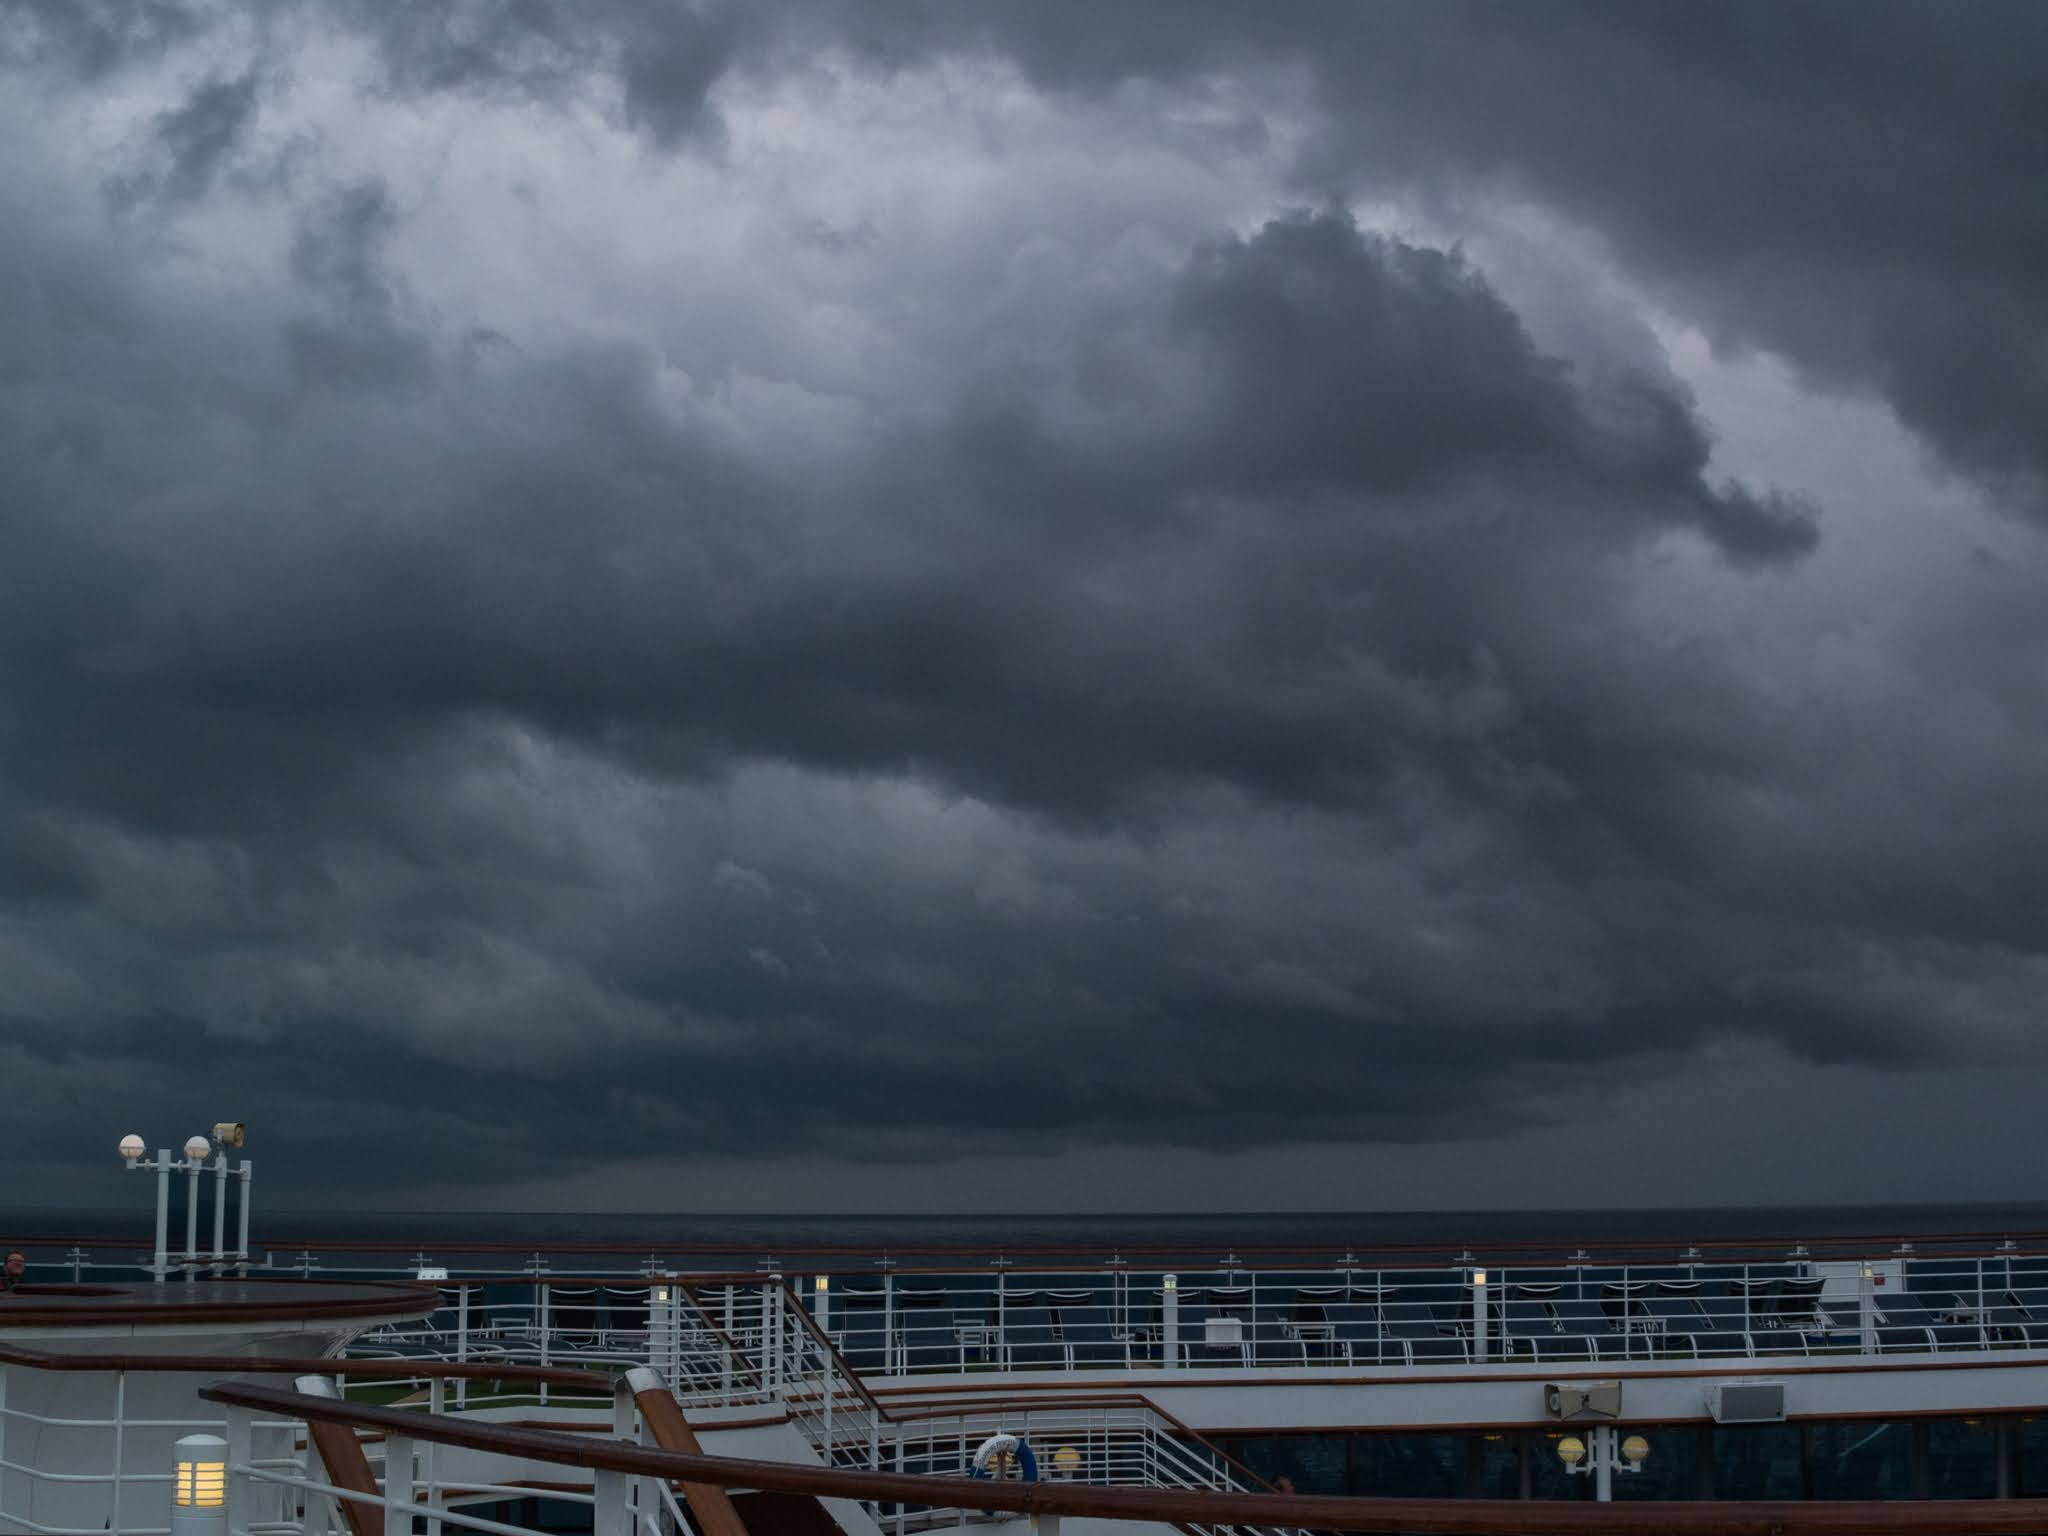 Dramatic clouds looming over an open cruise ship deck.